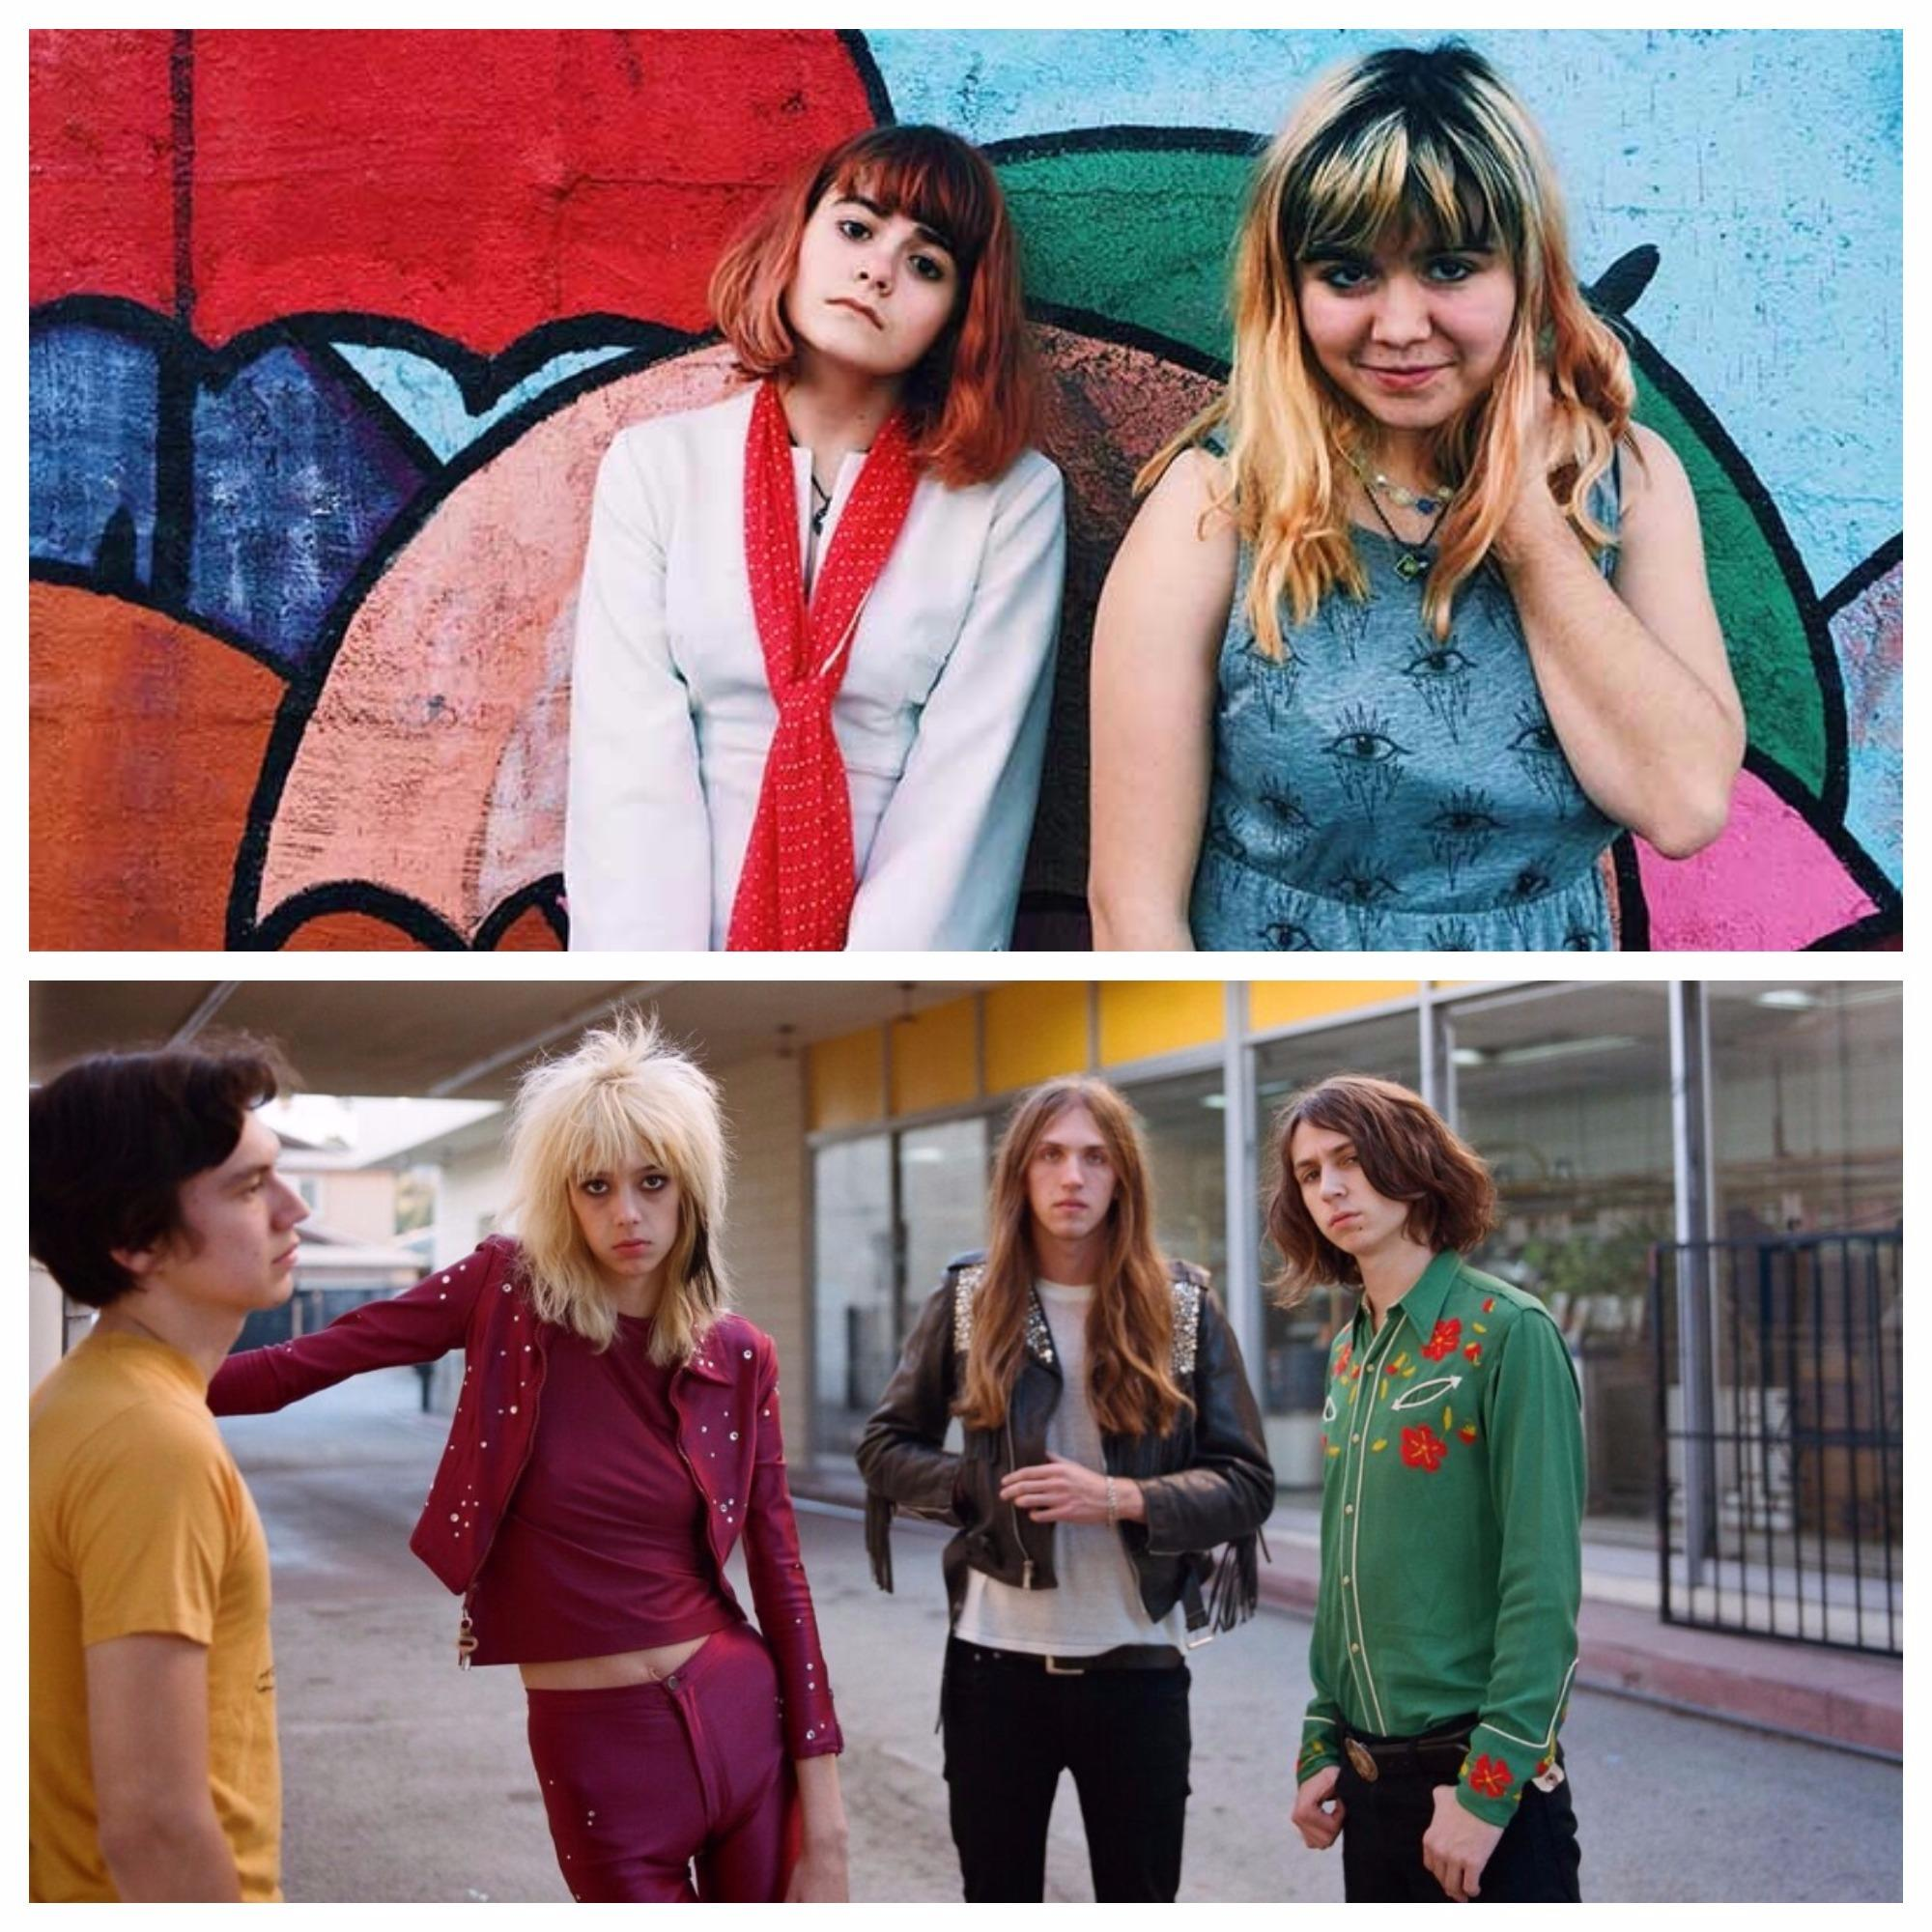 Skating Polly and Starcrawler